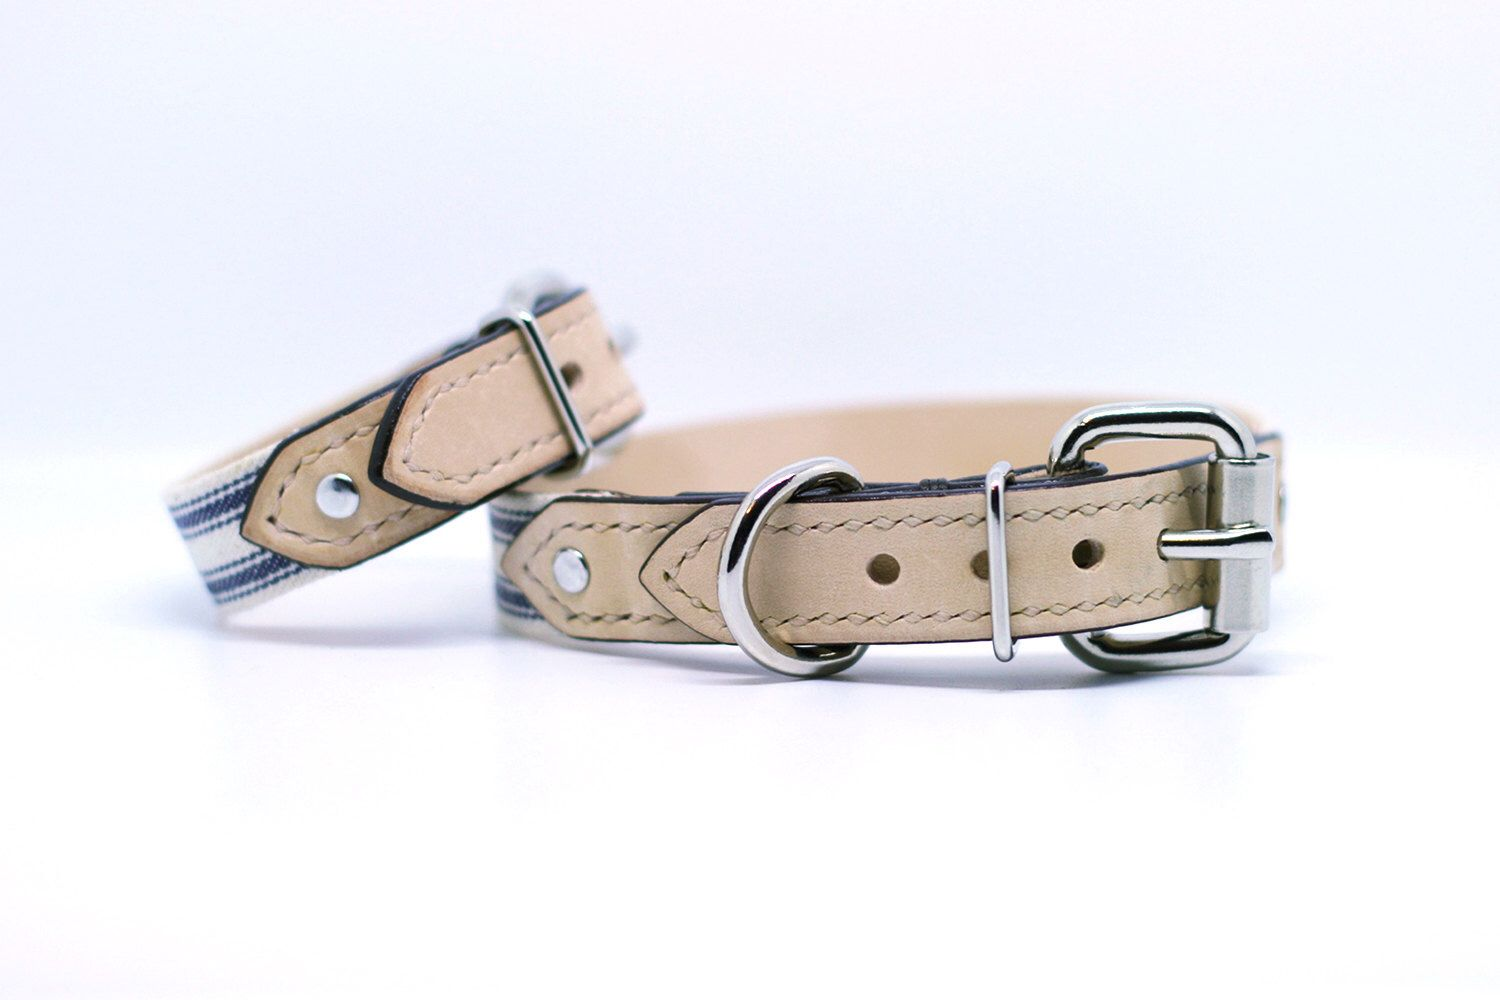 Matching Leather Collar & Bracelet in Natural Veg Tanned Leather and Blue Stripes (Handmade) by BearytailLeatherCo on Etsy https://www.etsy.com/ca/listing/261292395/matching-leather-collar-bracelet-in